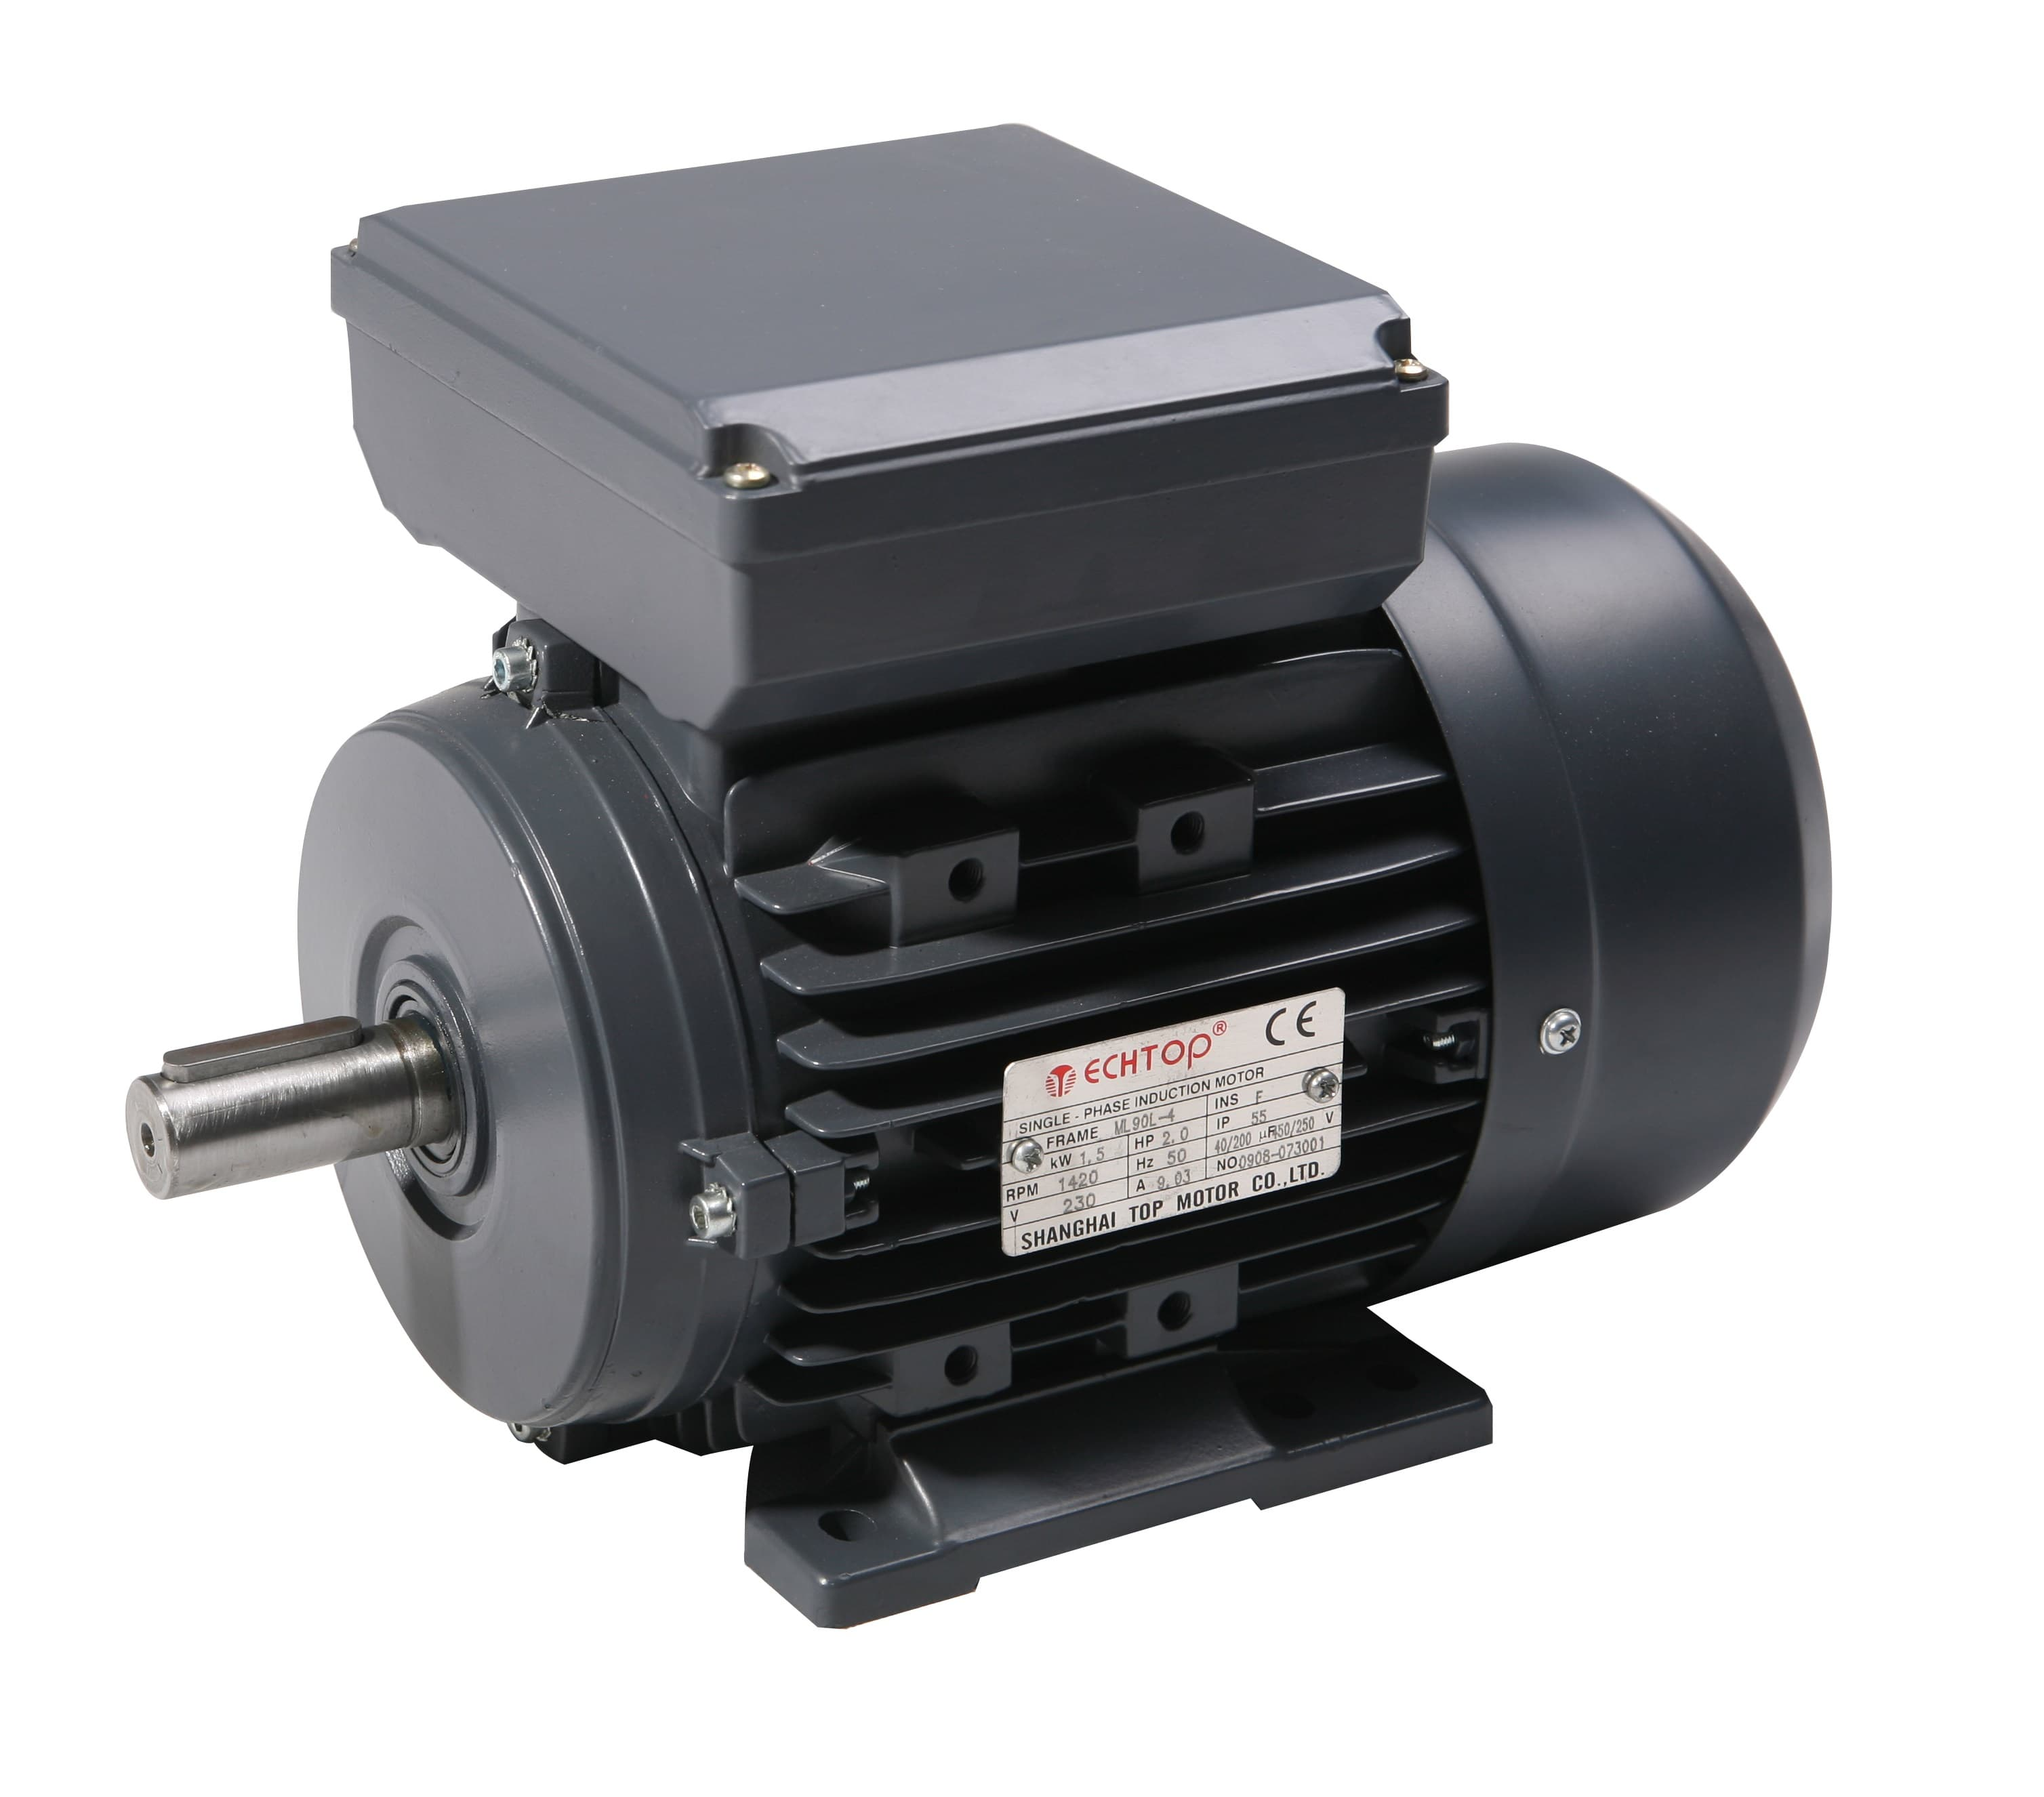 Flowfit The Leading Worldwide Suppliers Of Hydraulic Components Schoolnet Malaysia Ics Electromagnetism Images Electricbellpng Empty Single Phase 230v Electric